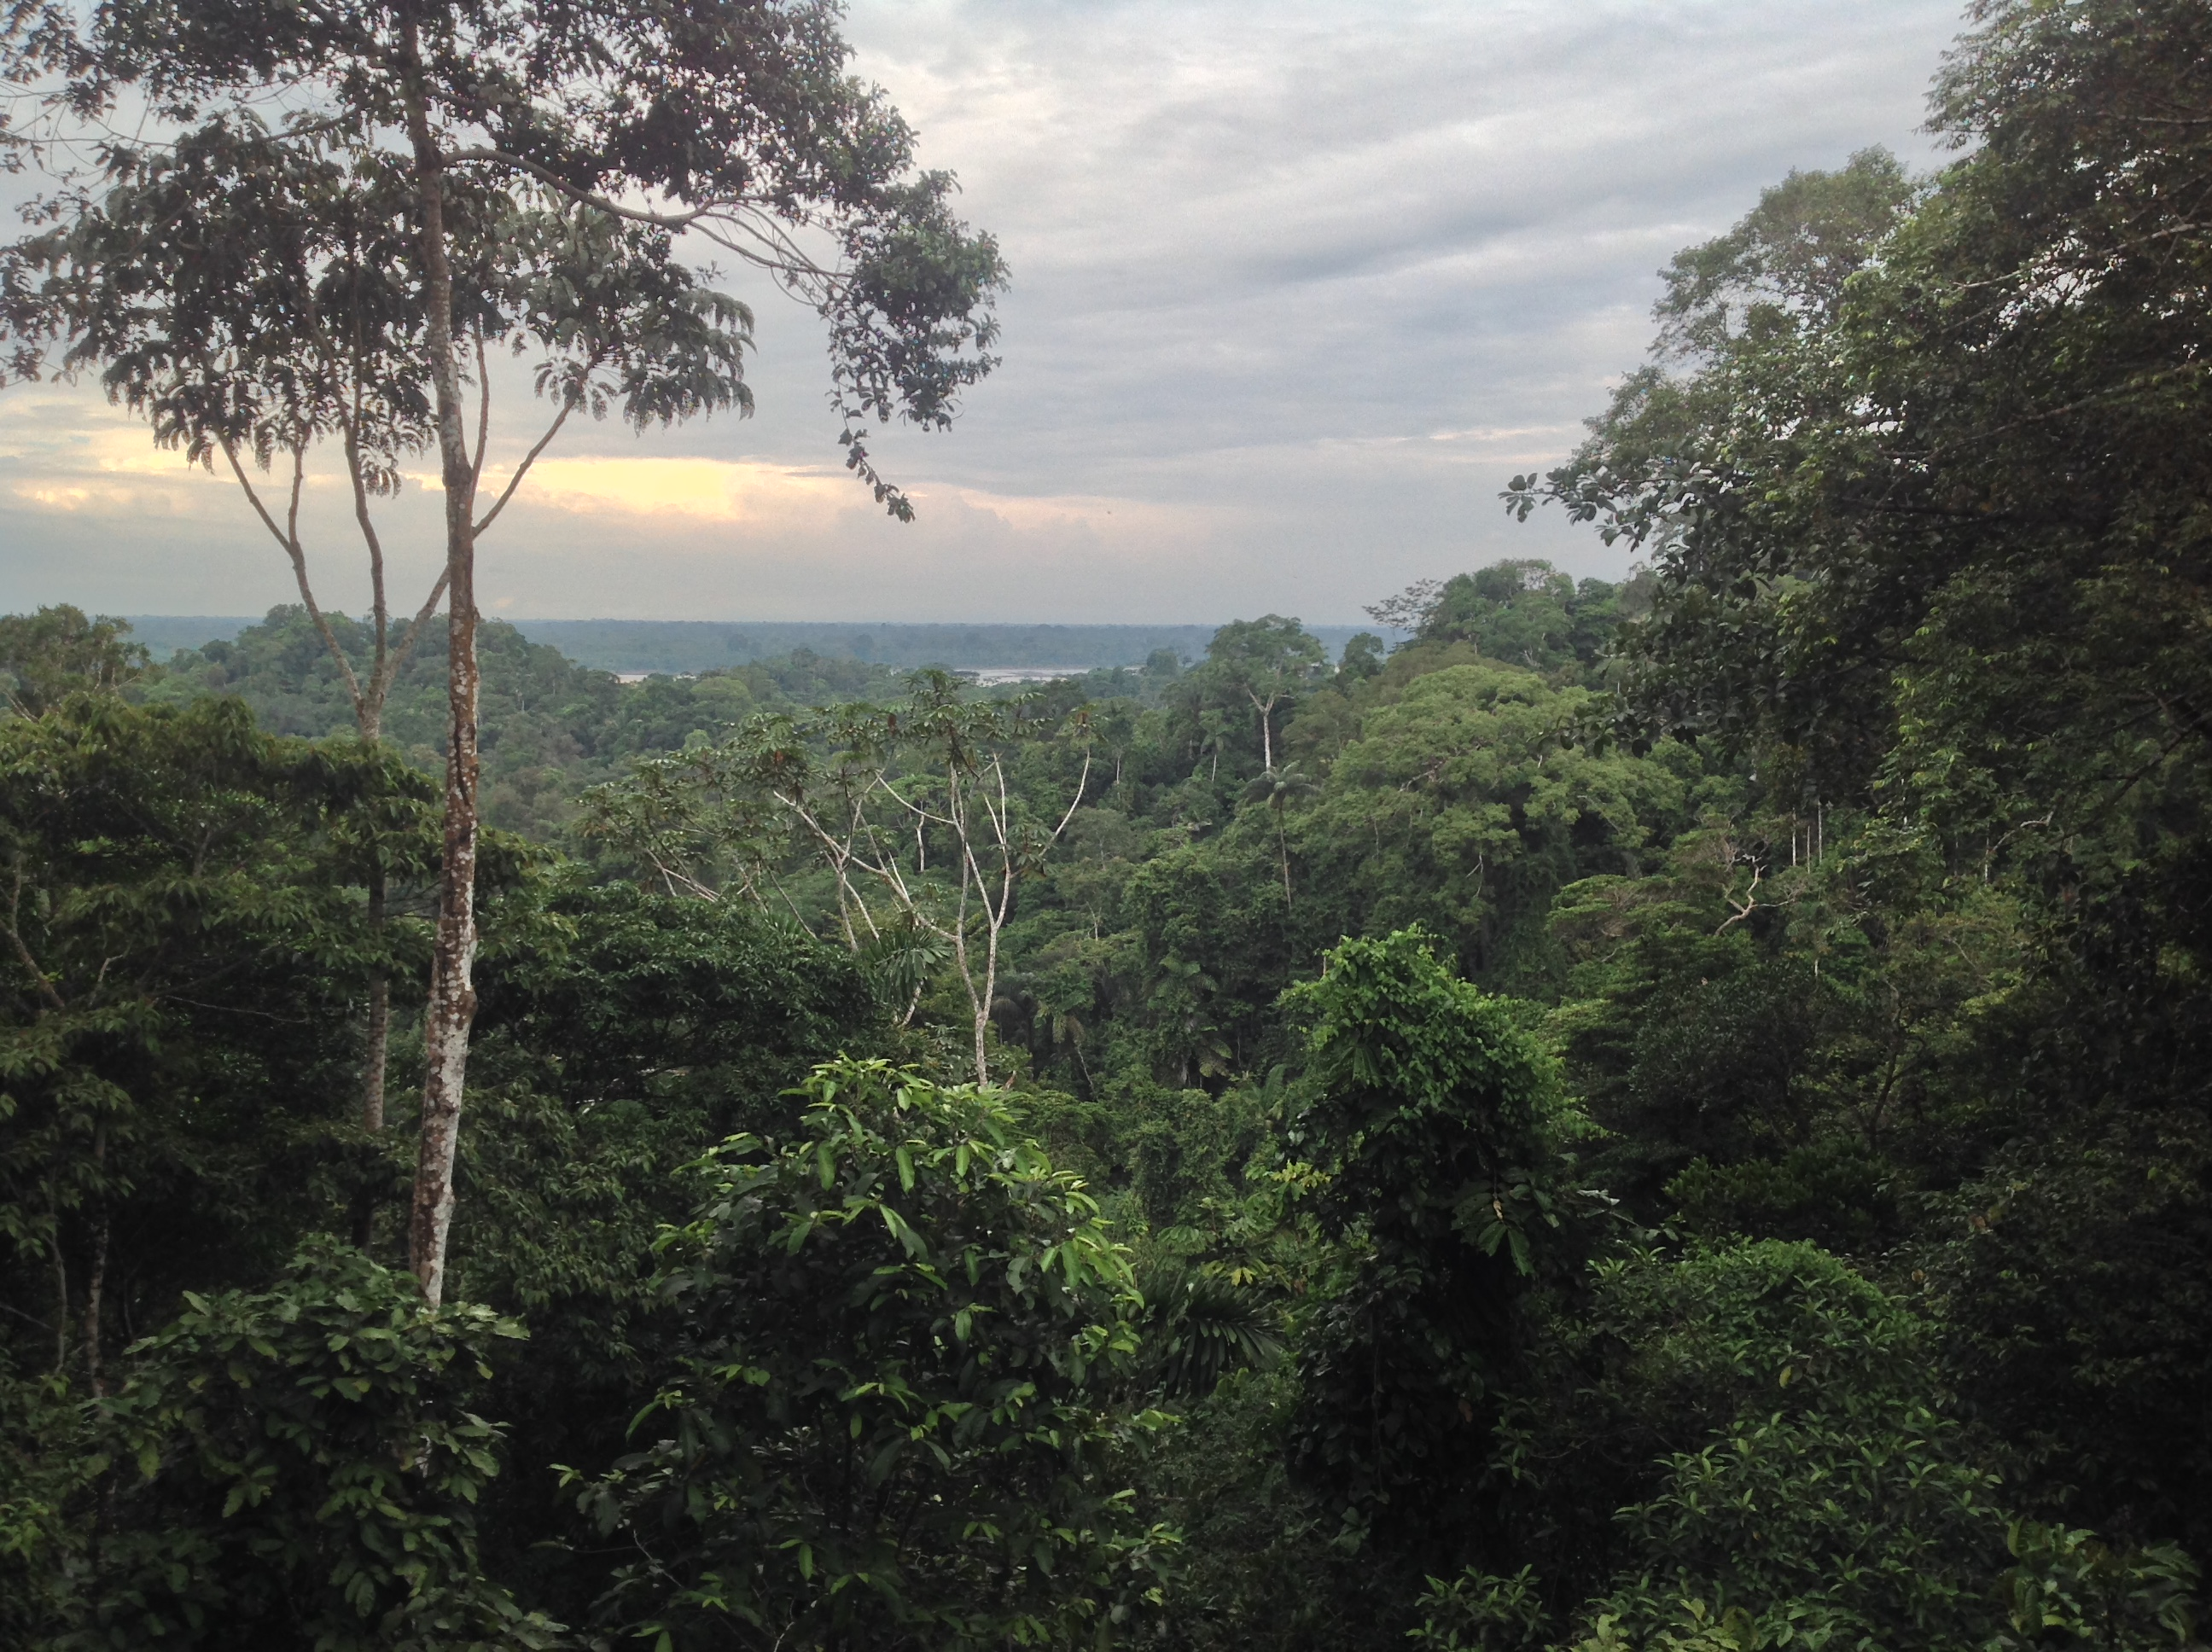 Another stunning view of the jungle.